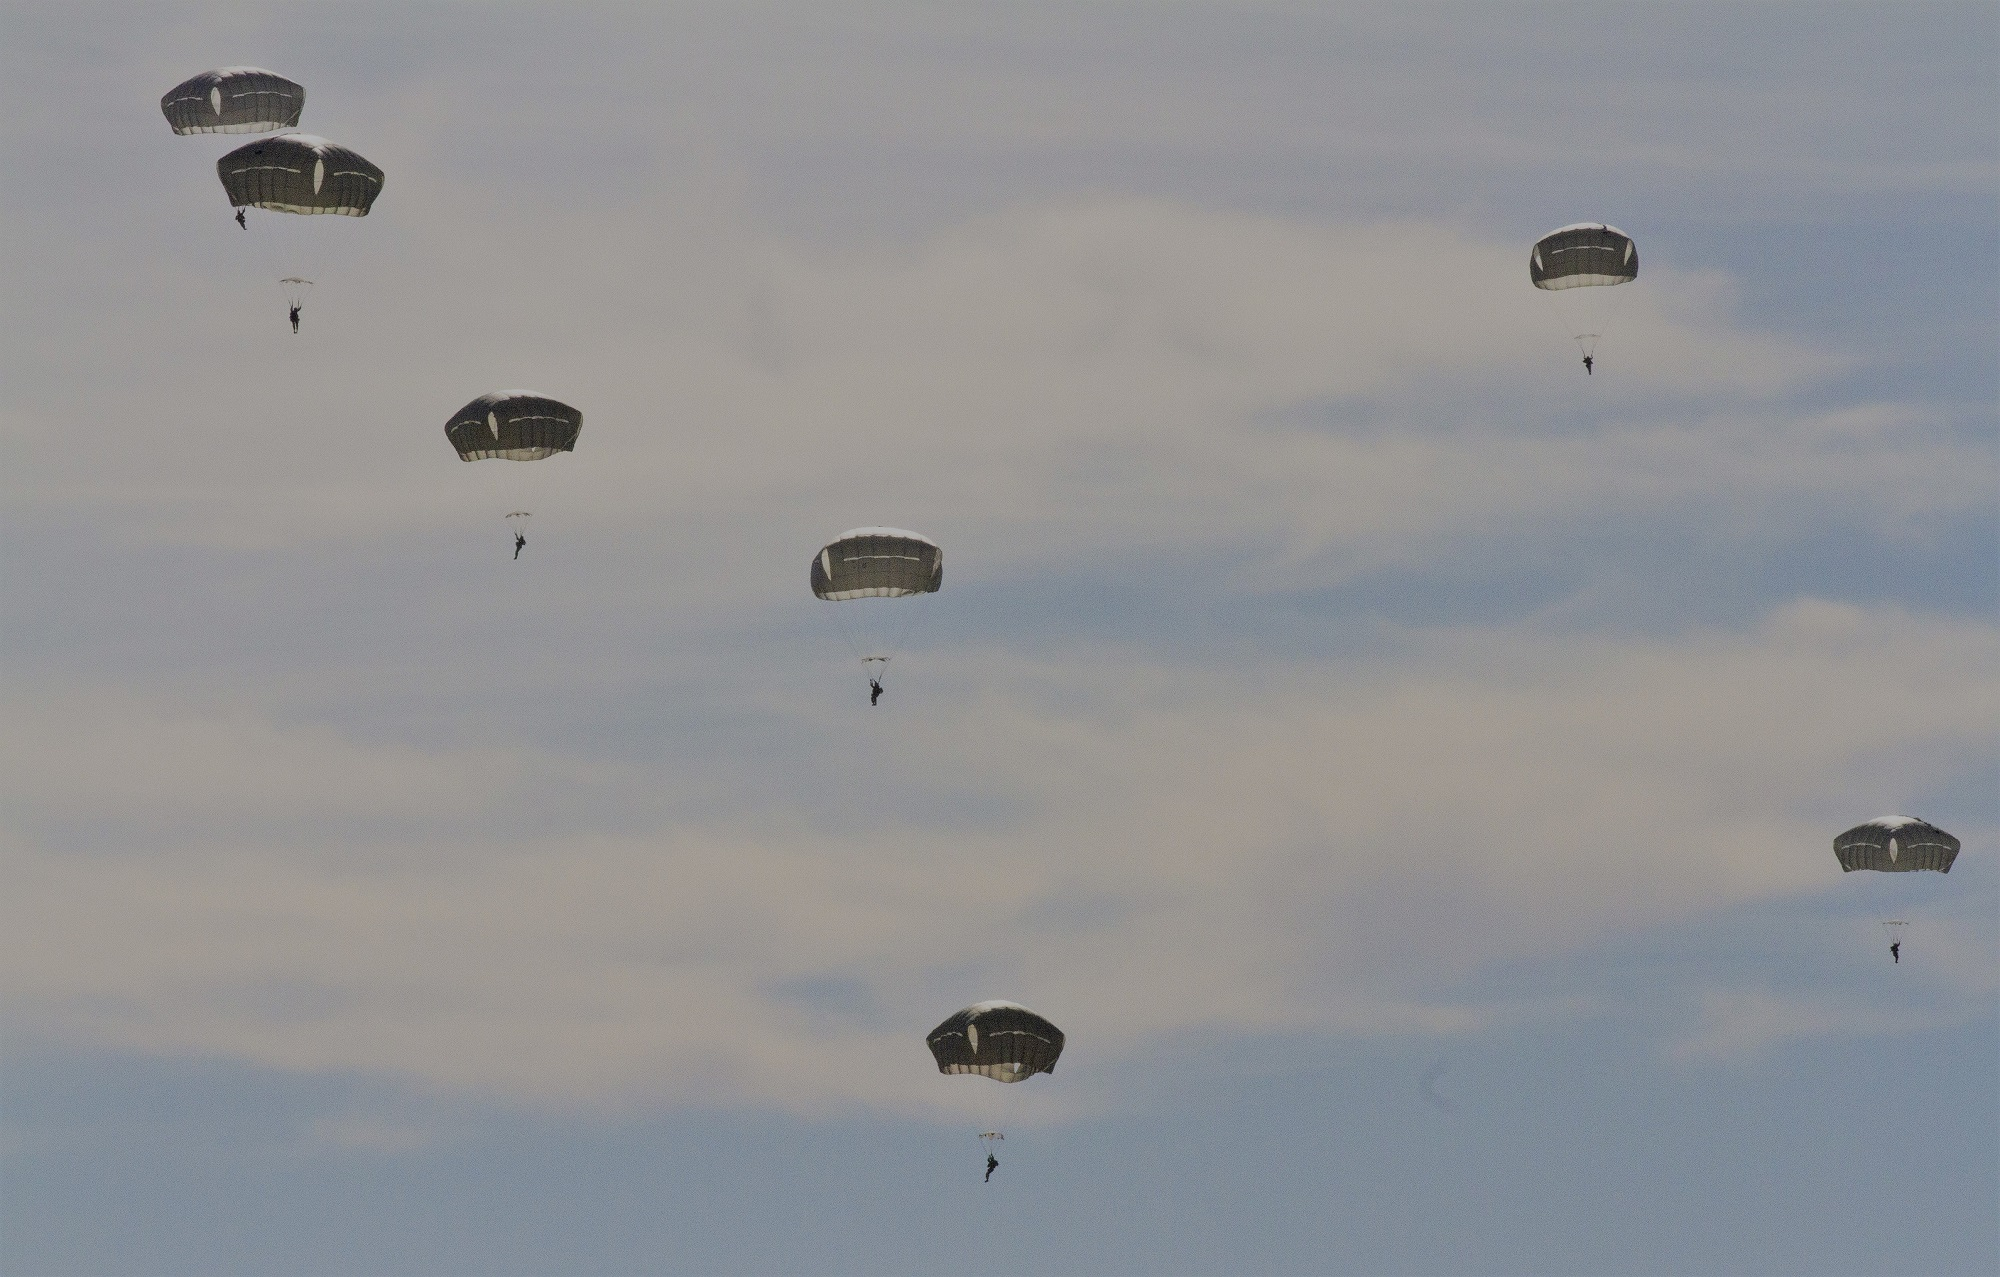 SOUTHCOM Announces Upcoming Airborne Exercise with Colombia, US Army South, and 82nd Airborne Division